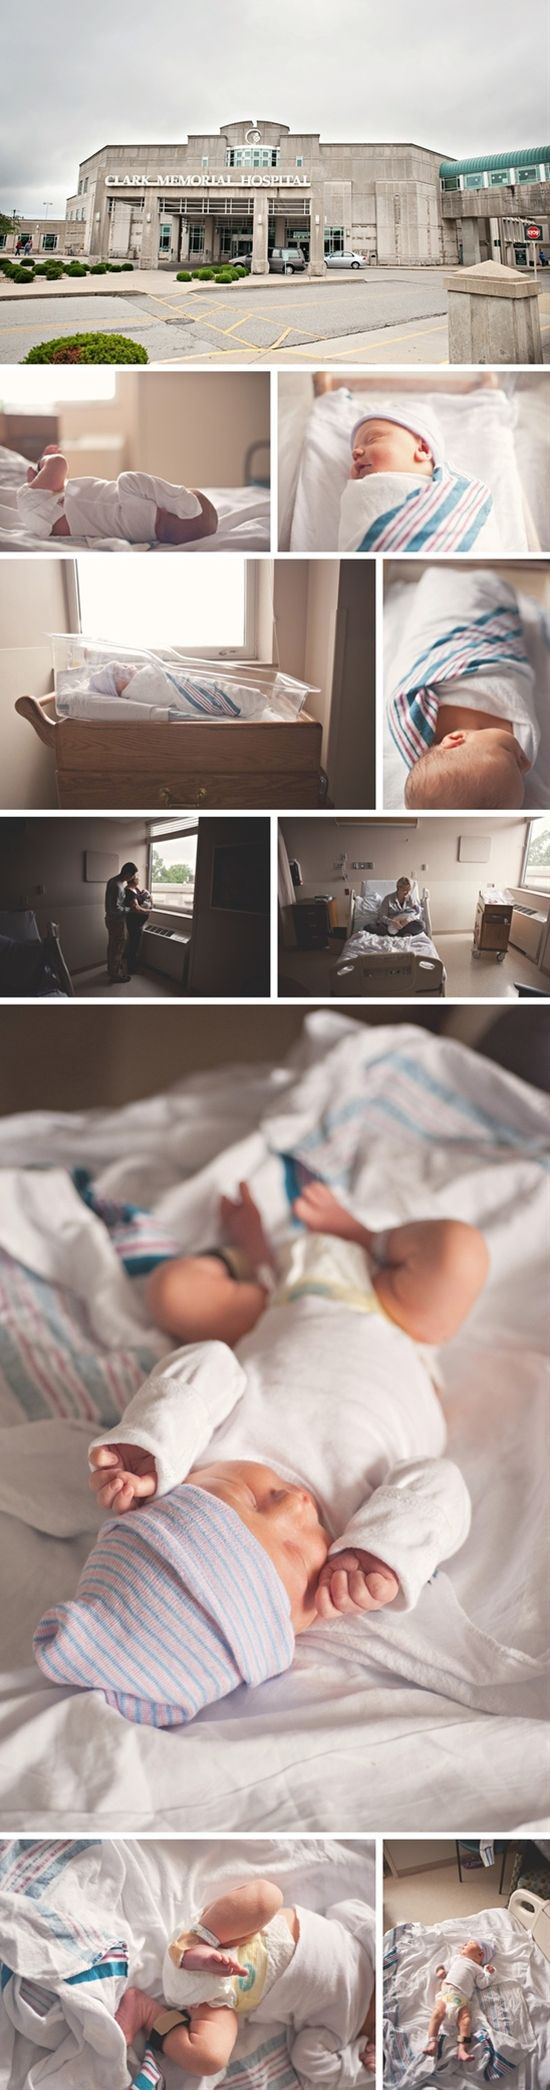 Hospital Newborn Photo Session - these are really cute